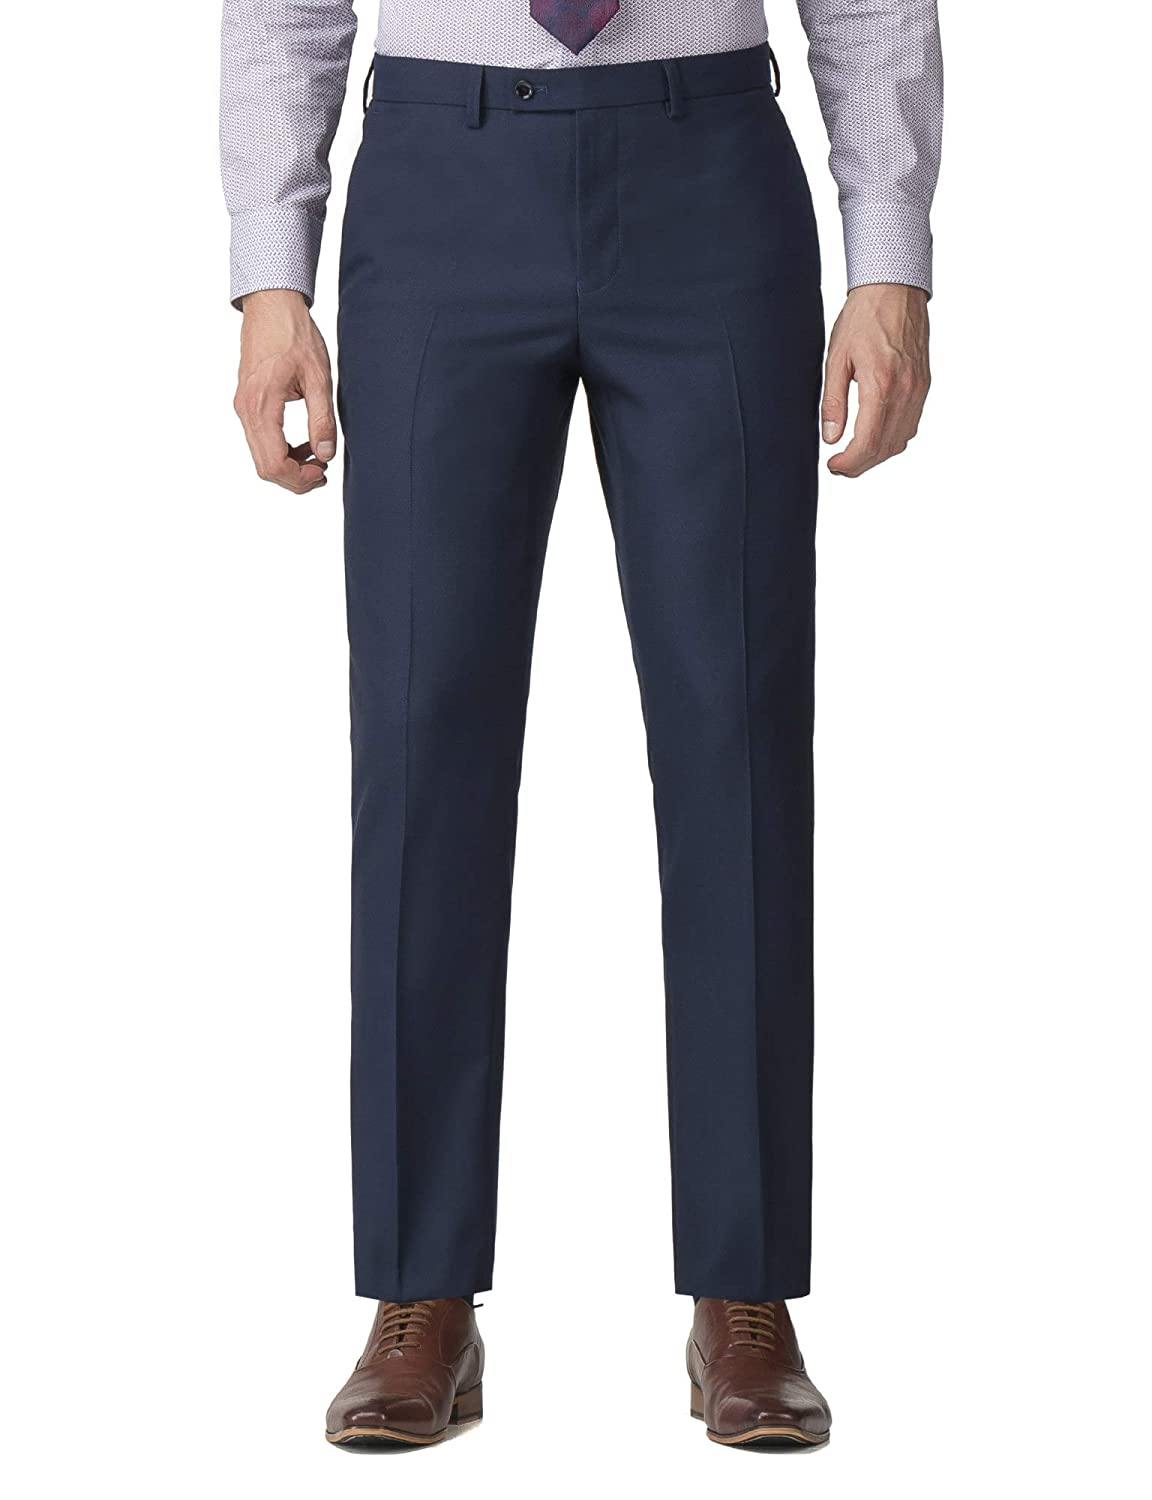 Stvdio by Jeff Banks Navy Texture Tailored Fit Suit Trouser